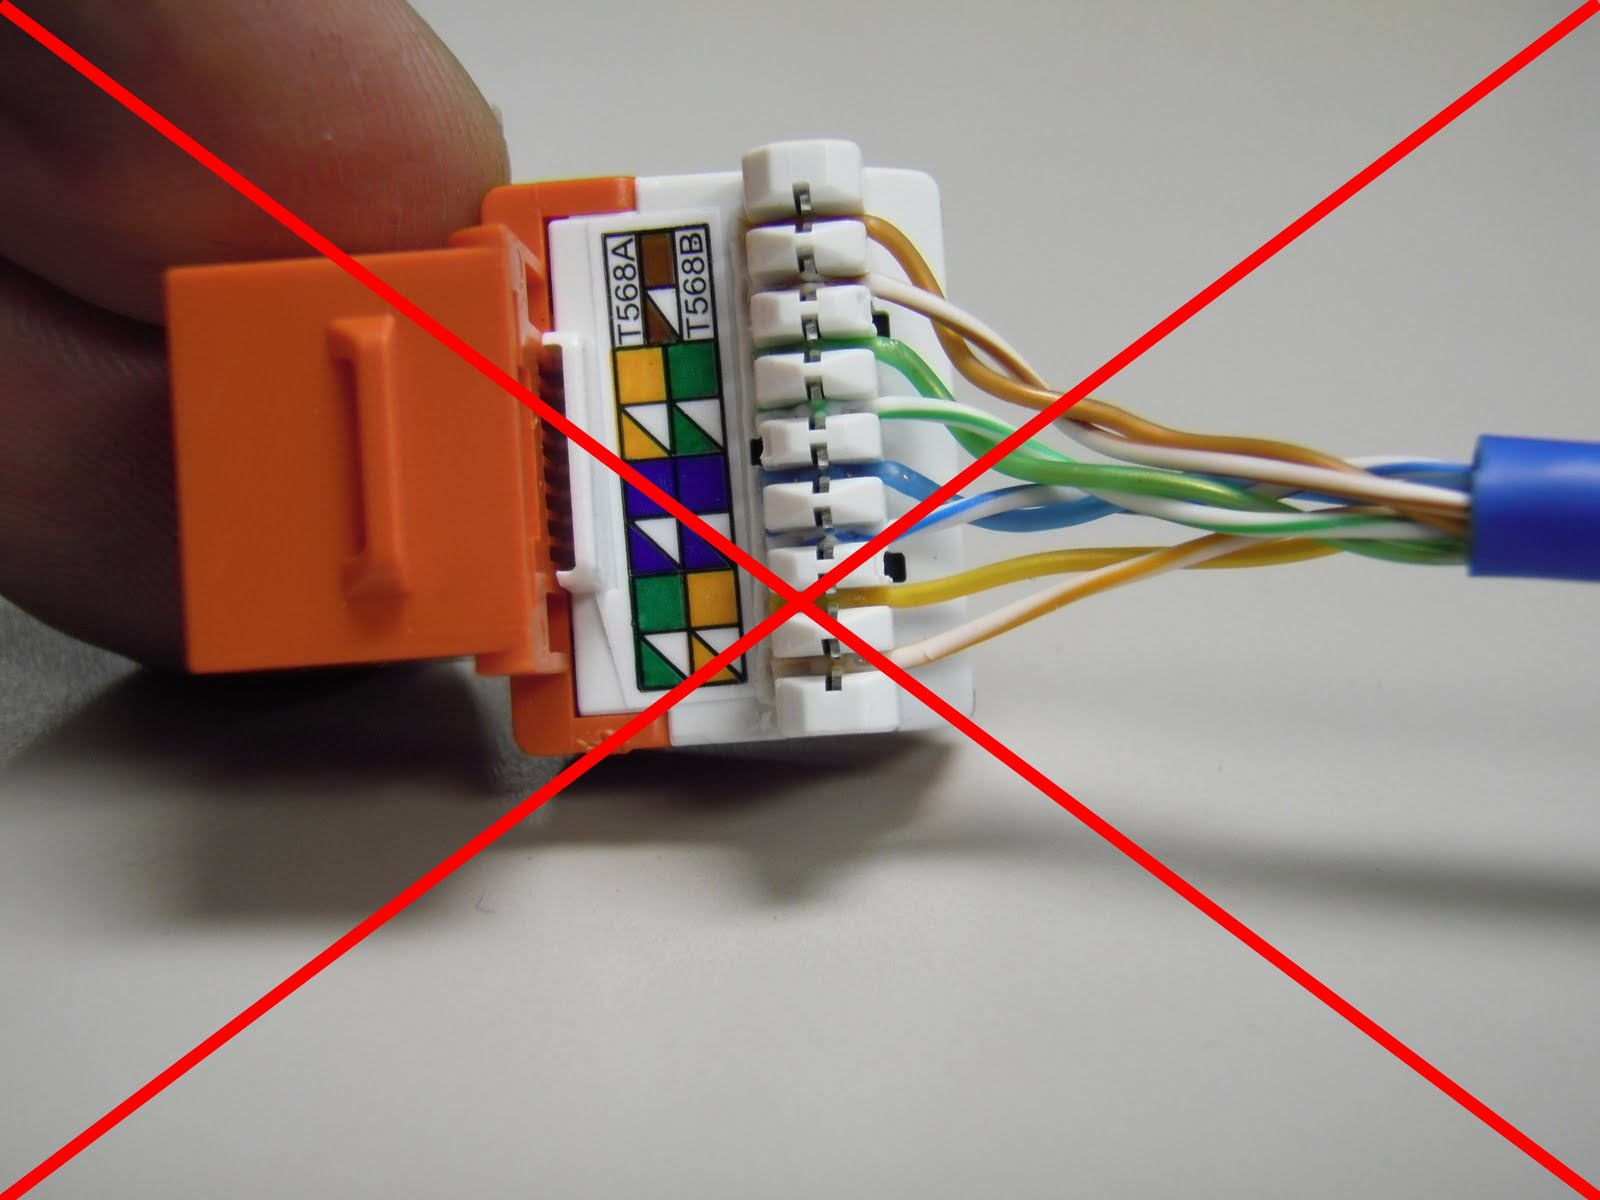 CAT5E+ER+JACK+PUNCHED+WRONG+RED+X the trench how to punch down cat5e cat6 keystone jacks cat5e socket wiring diagram at bakdesigns.co